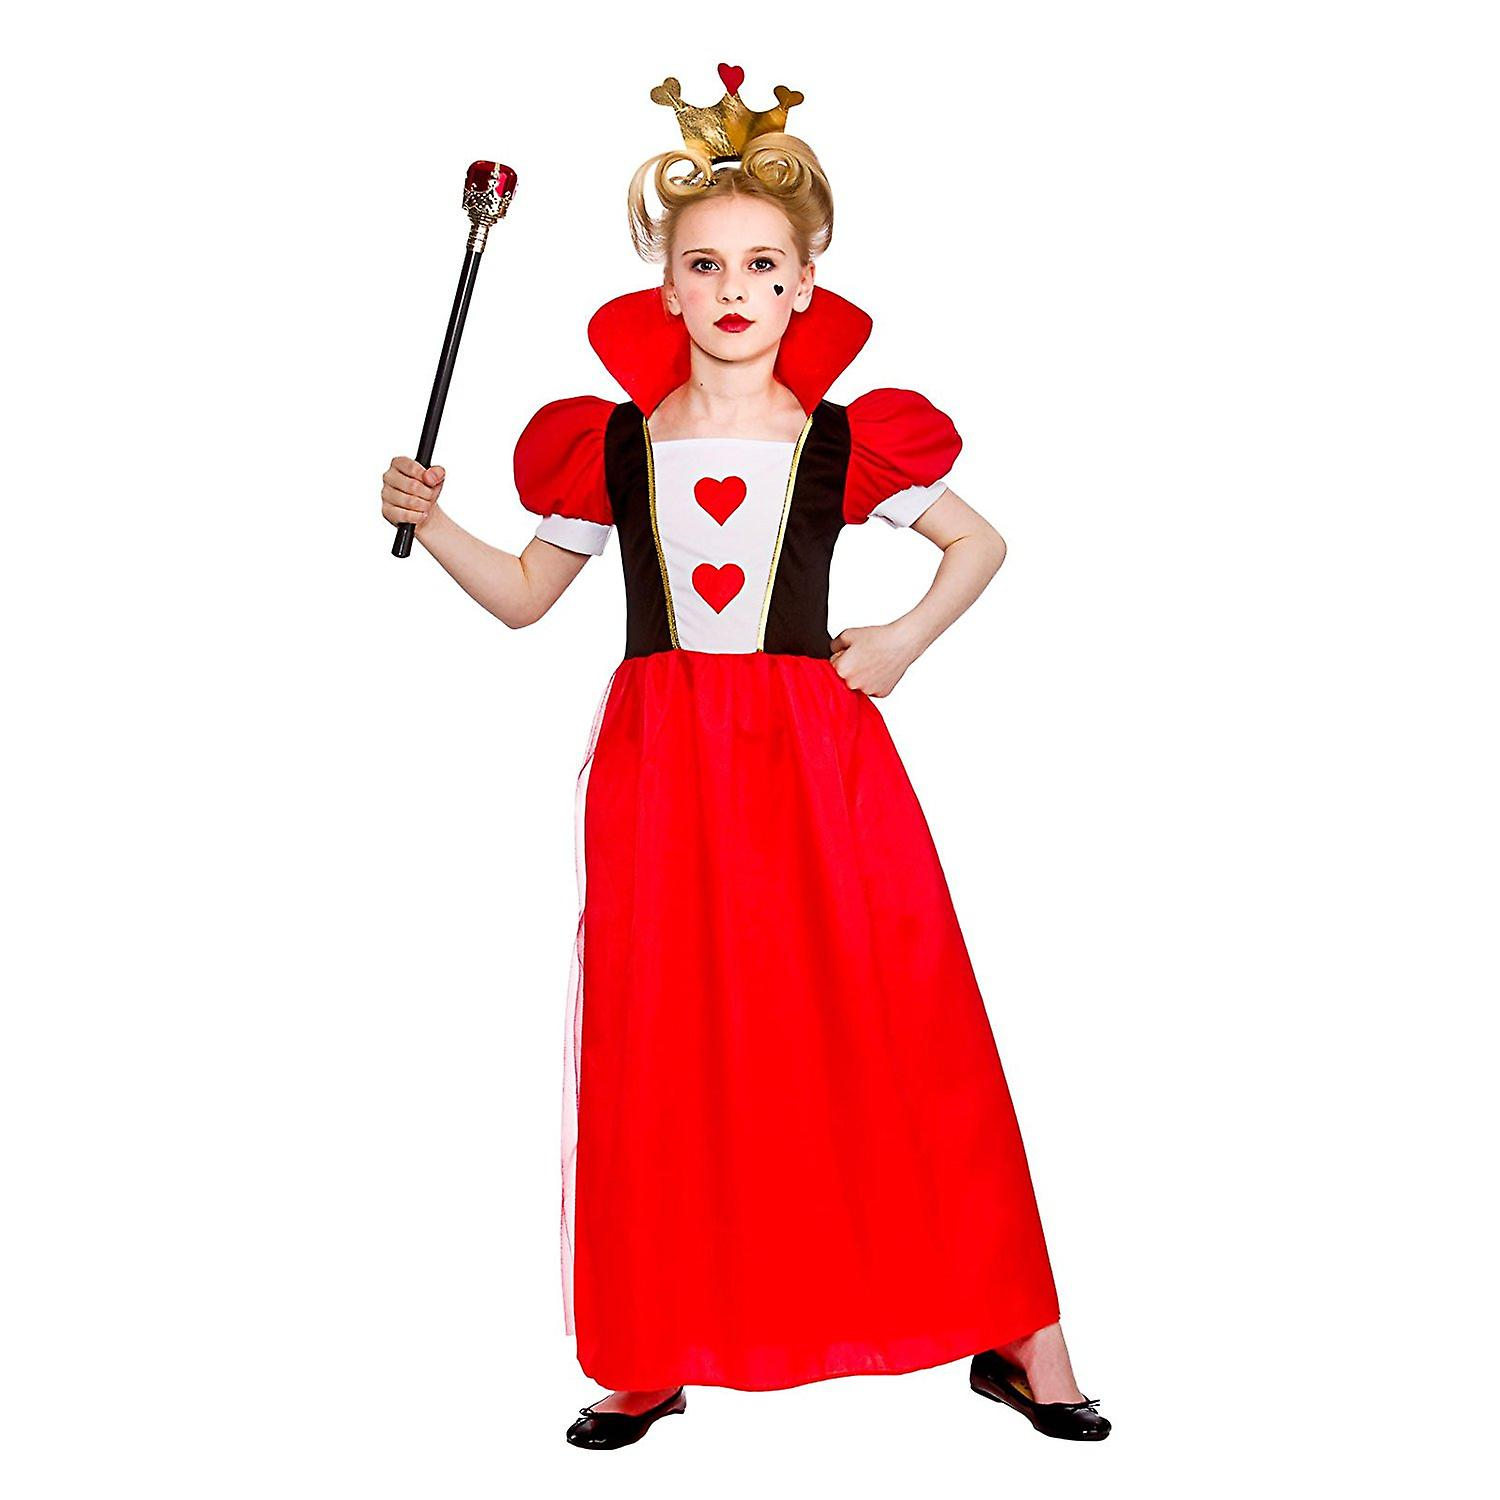 Storybook Queen Childrens Fancy Dress Costume Dress with Attached Collar & Crown